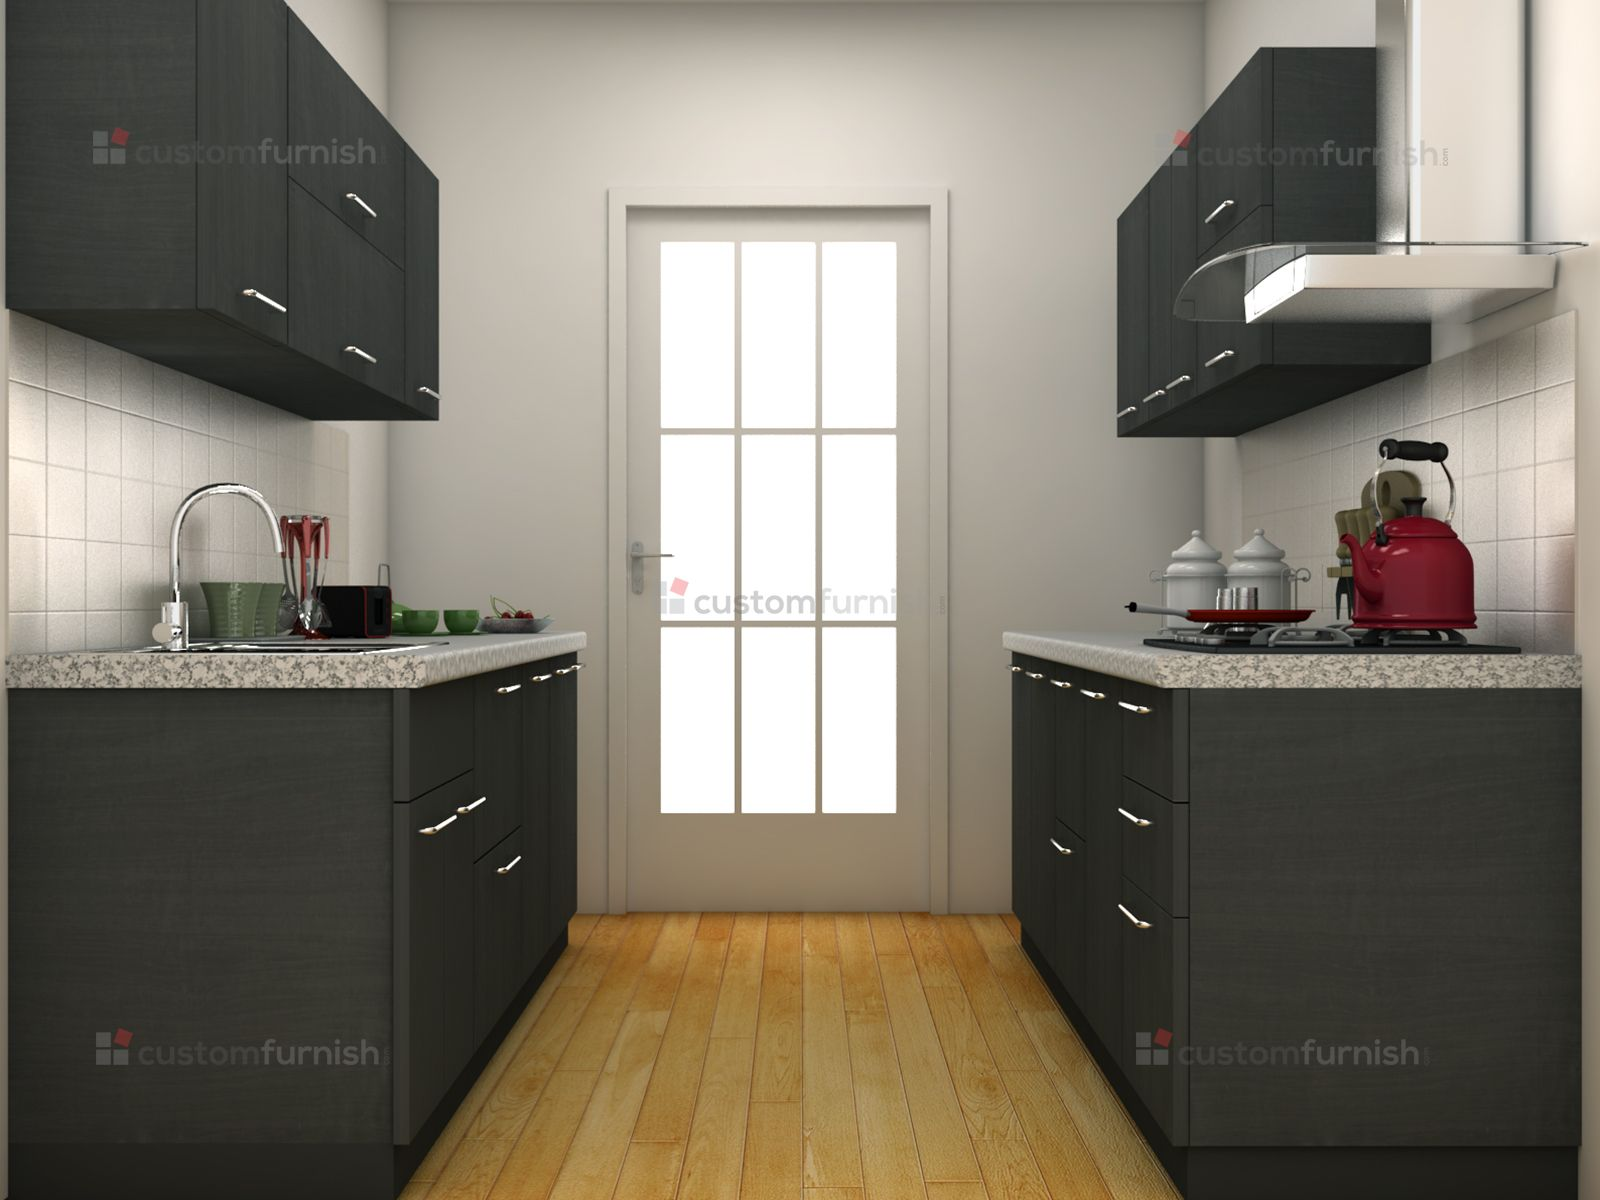 Grey Modular Kitchen Design Morden Kitchen Design Kitchen Room Design Kitchen Design Open